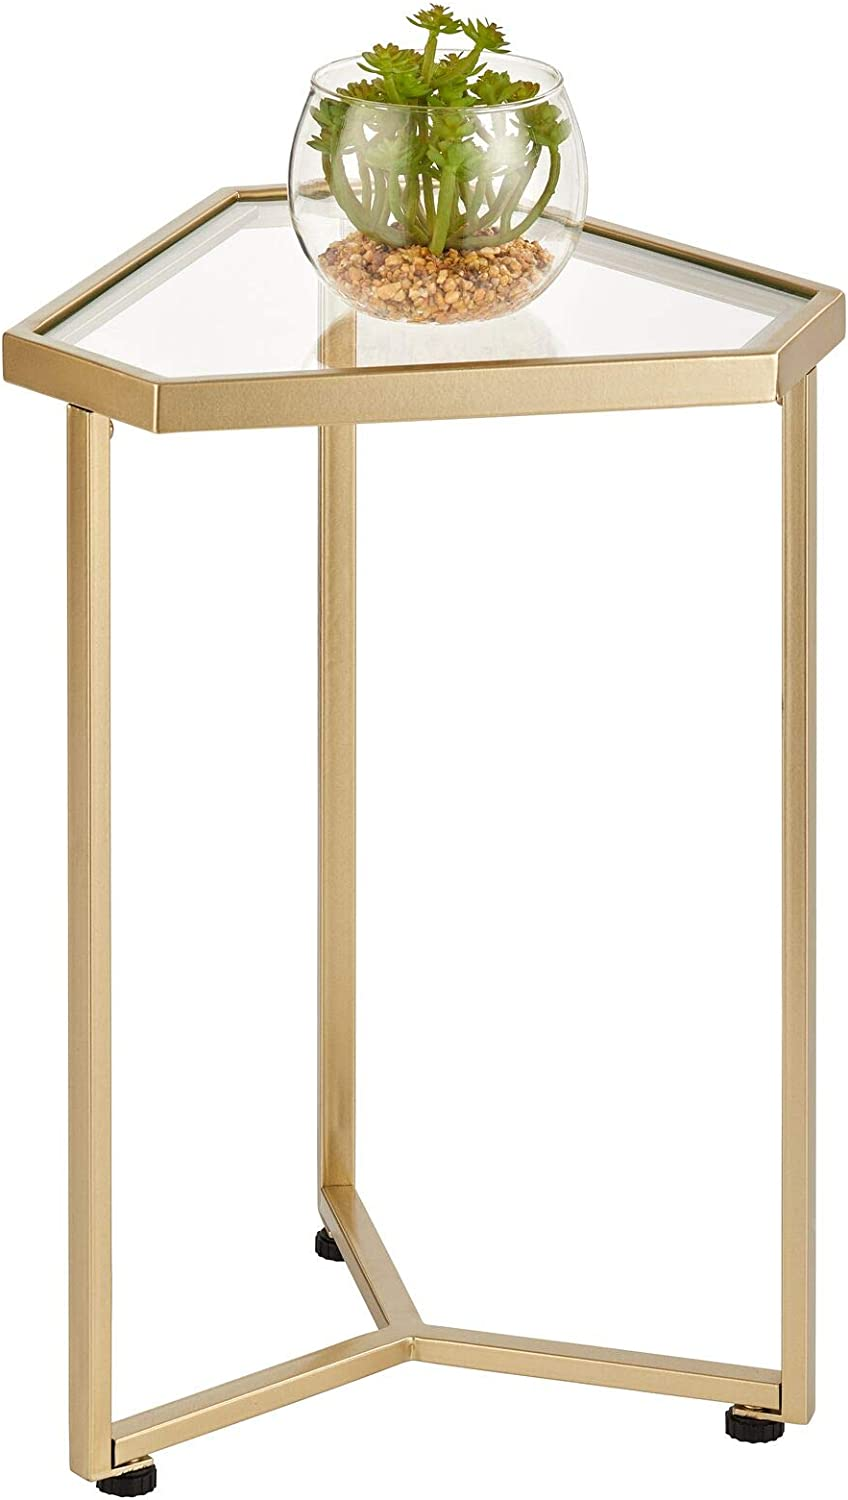 mDesign Triangle Metal & Glass in-Lay Accent Table - Side/End Table - Decorative Legs, Glass Top - Home Decor Accent Furniture for Living Room, Bedroom - Soft Brass/Glass